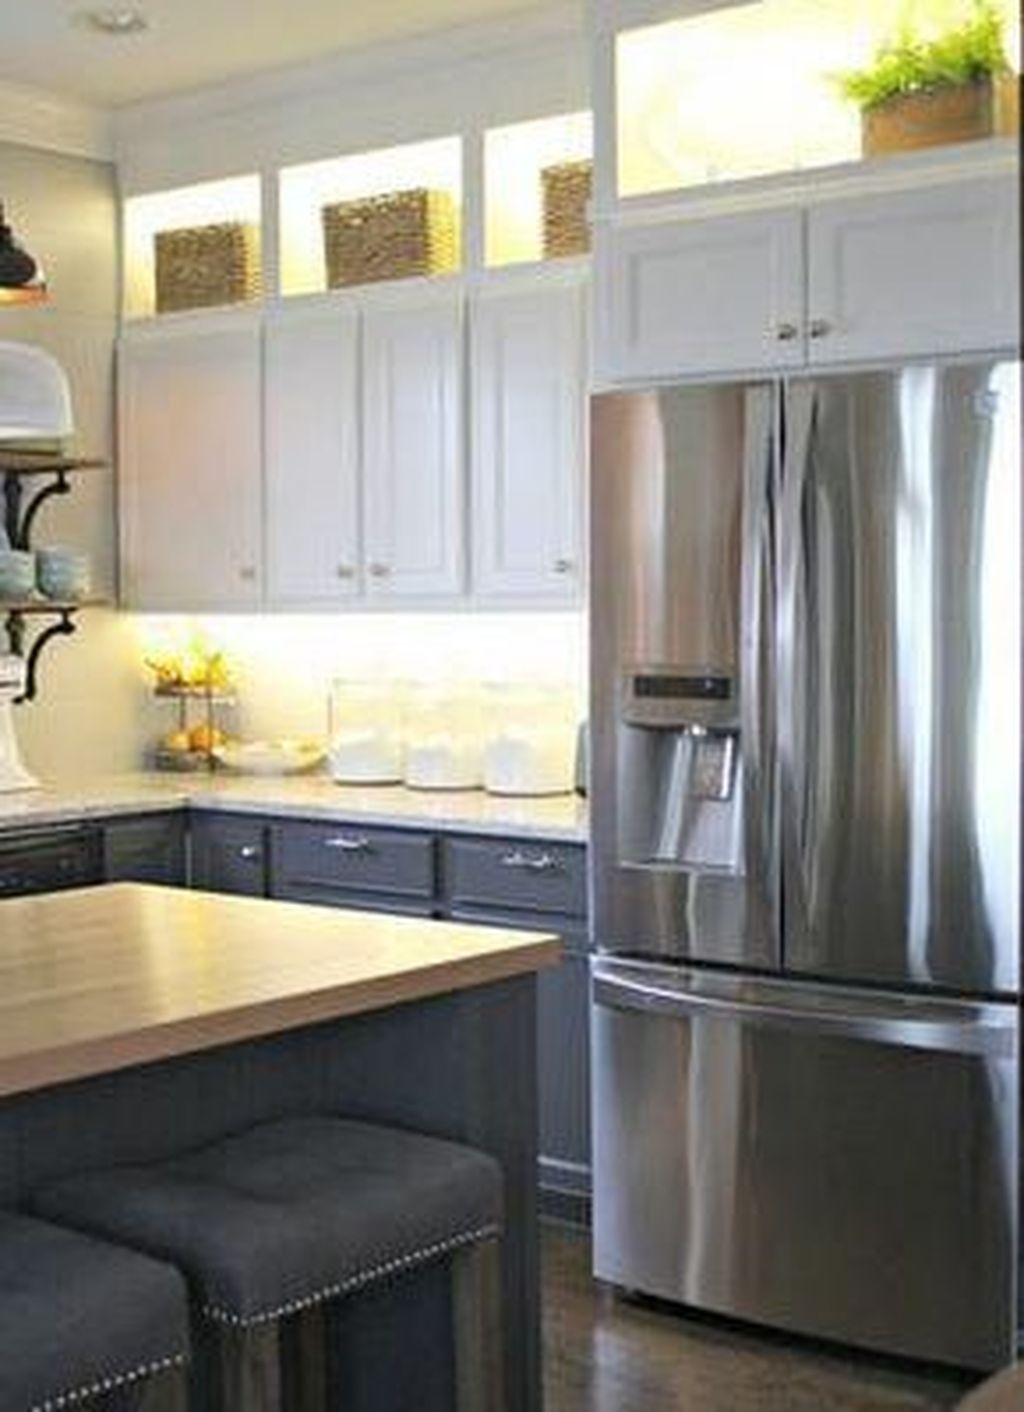 Cool Diy Kitchen Design Ideas You Will Definitely Want To Keep 23